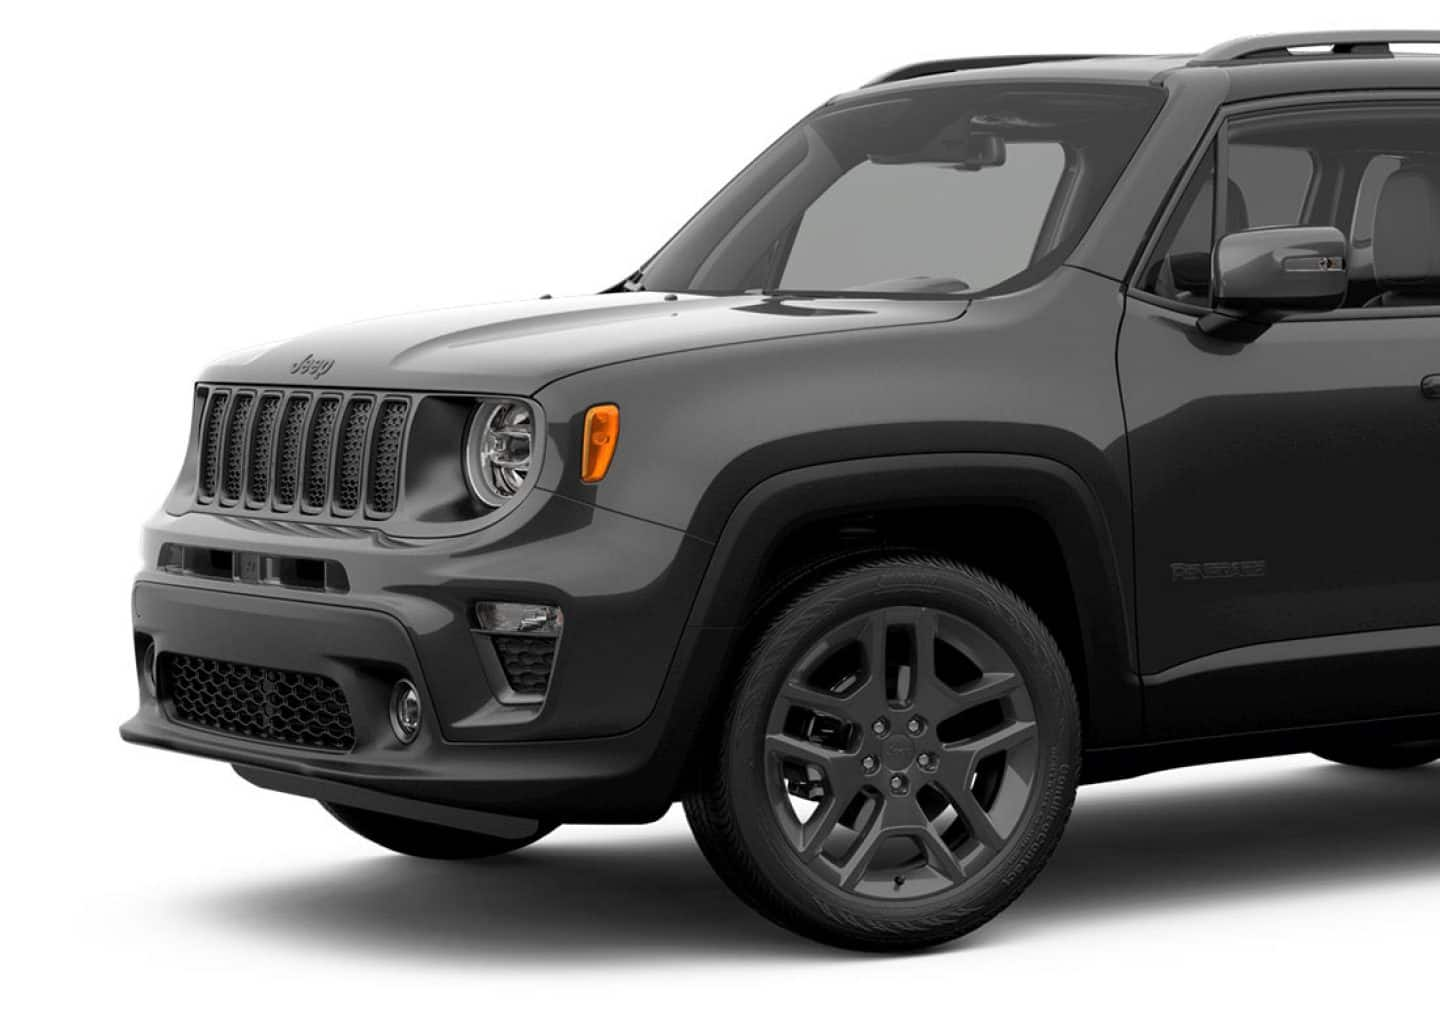 2019 Jeep Renegade Exterior Features For Your Adventure